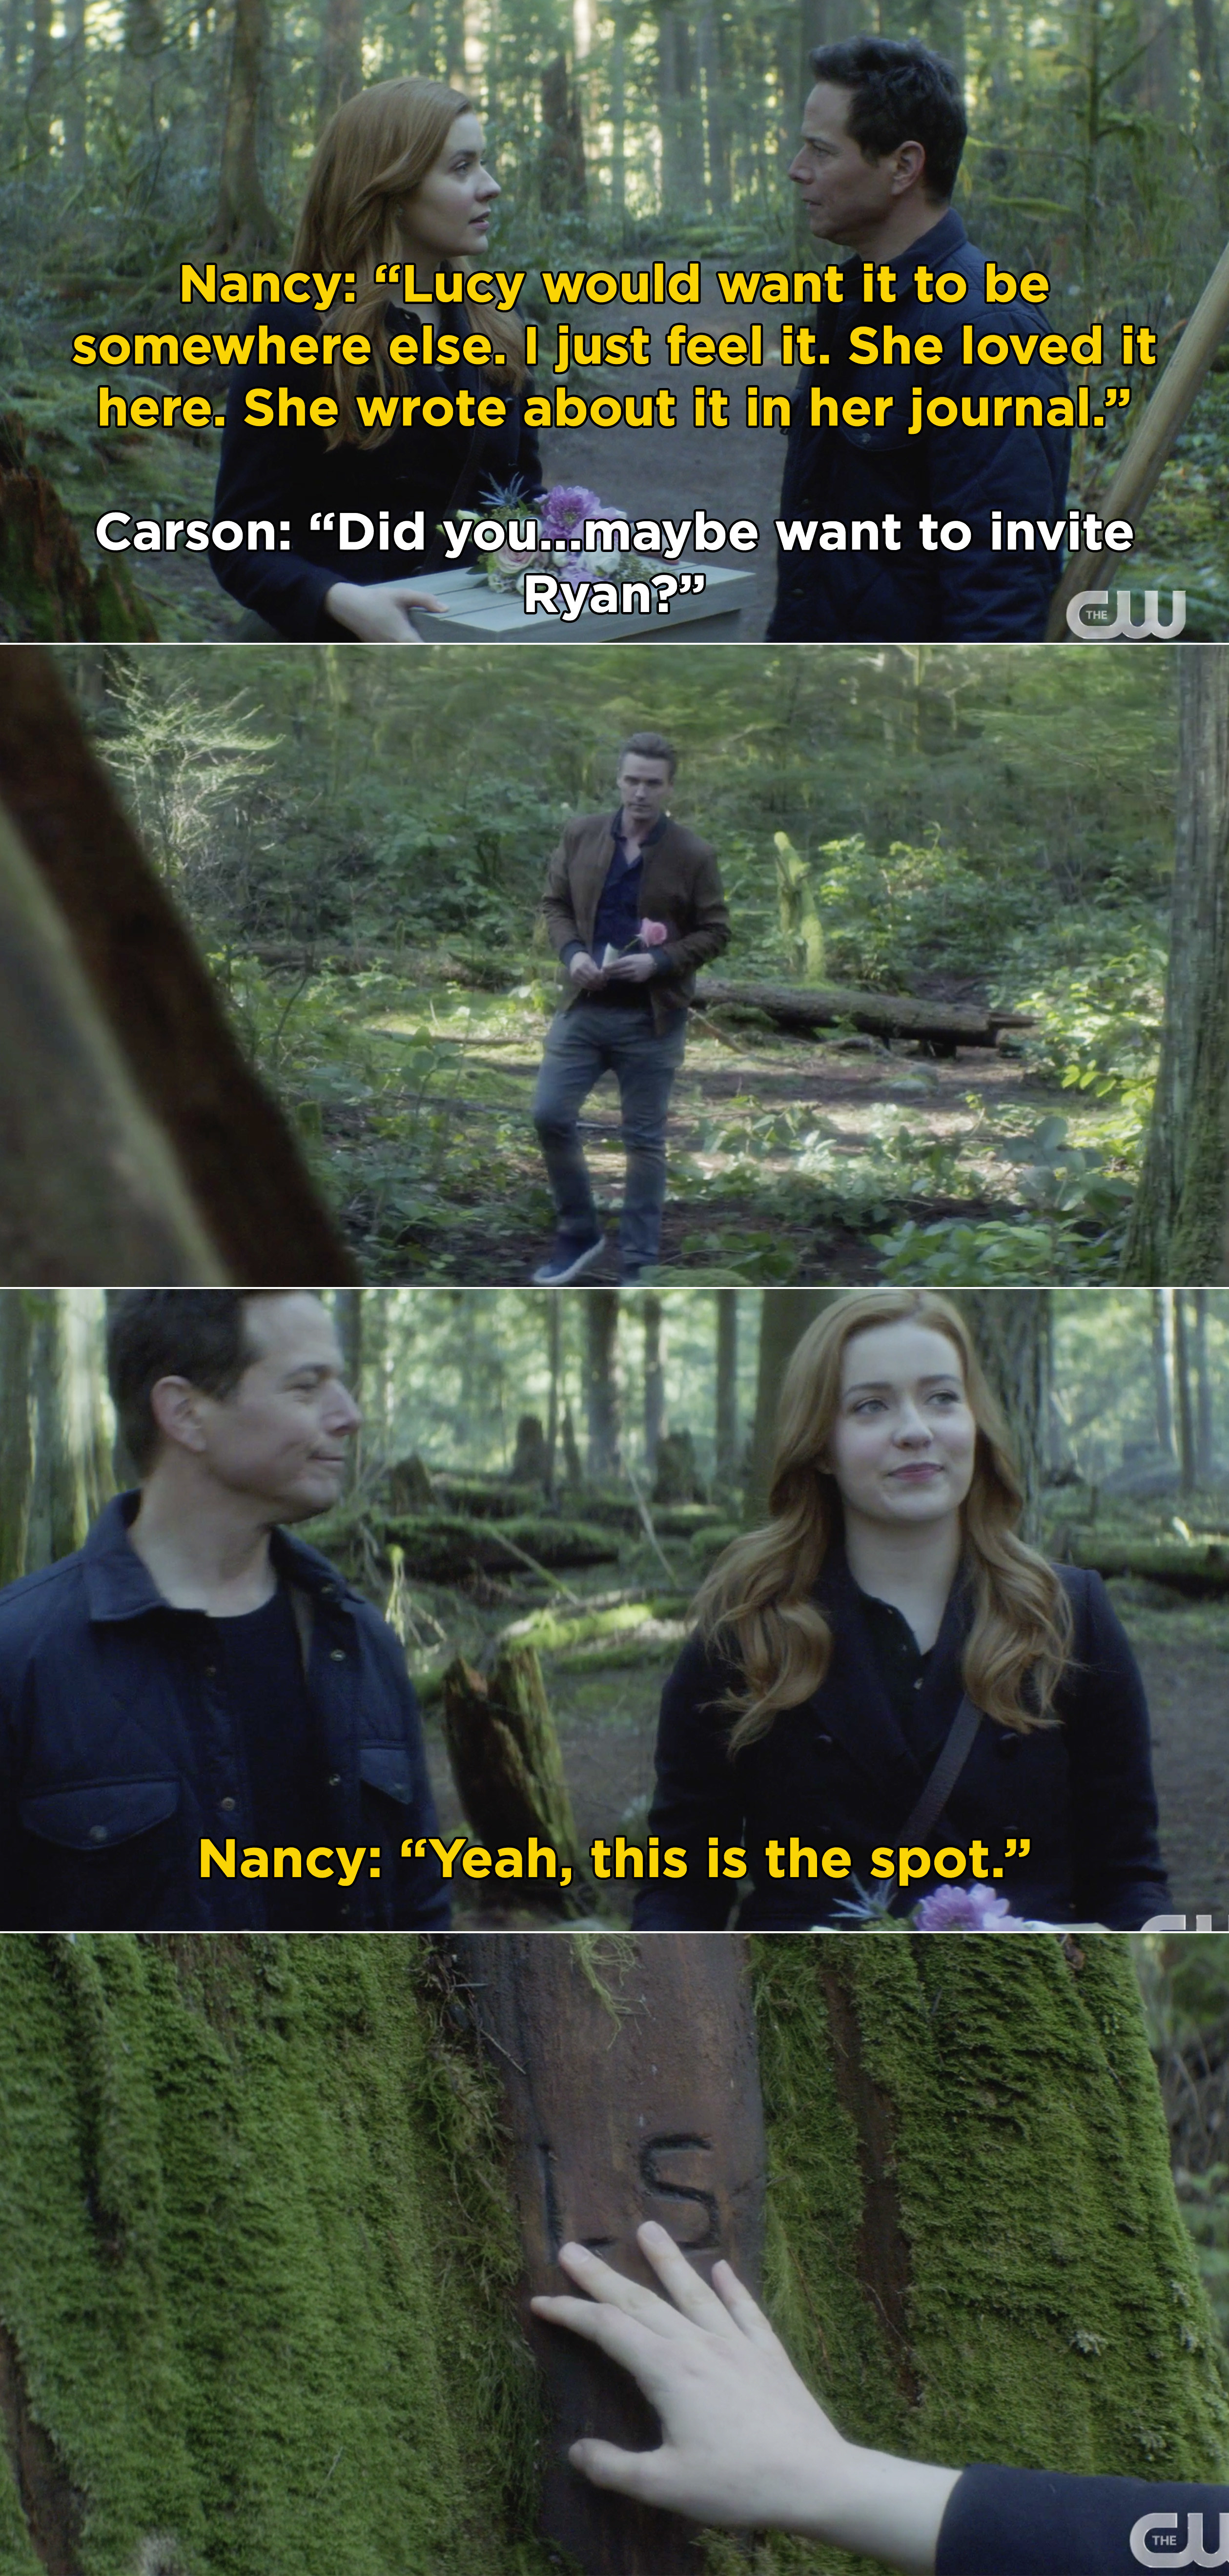 Nancy saying that Lucy loved this spot in the woods and wrote about it, and then Carson asking if Ryan should join, and Ryan already being there with a flower